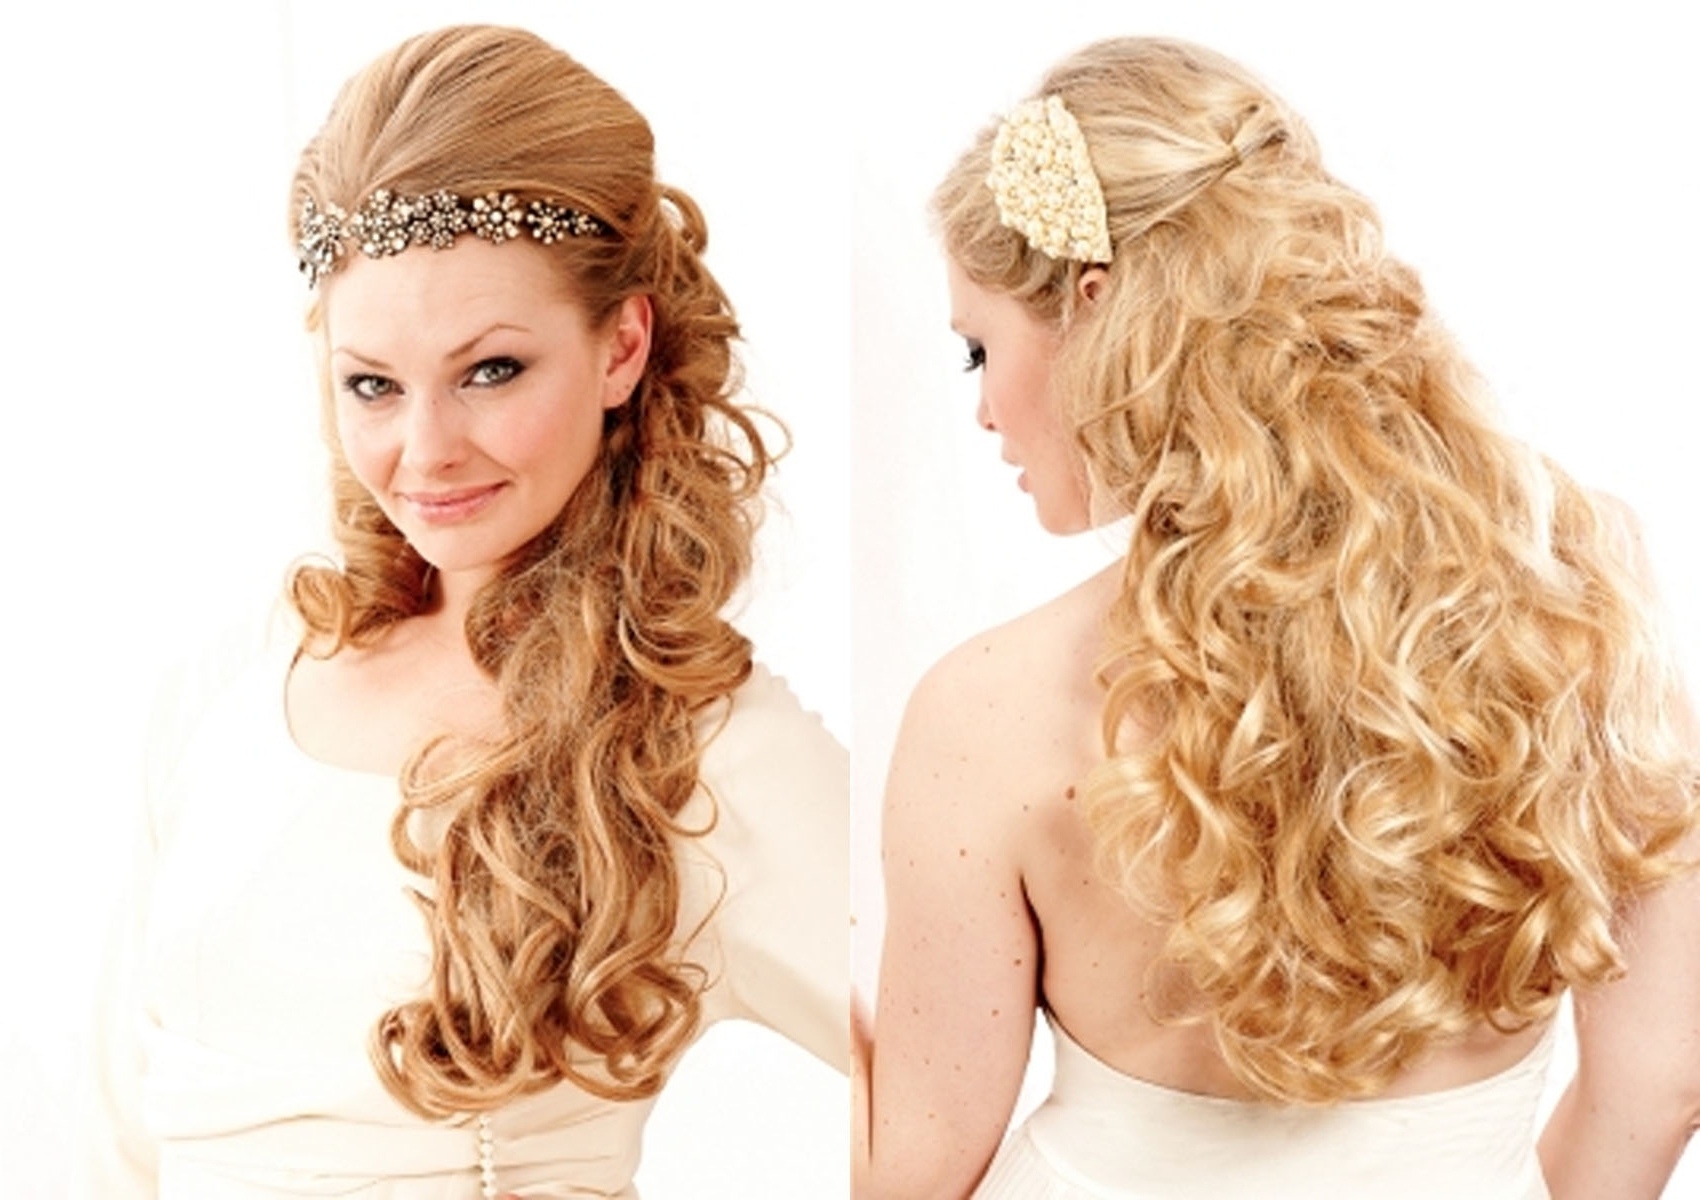 Well Known Beach Wedding Hairstyles For Long Curly Hair For Formal Hairstyles For Long Hair Wedding Trendy (View 15 of 15)